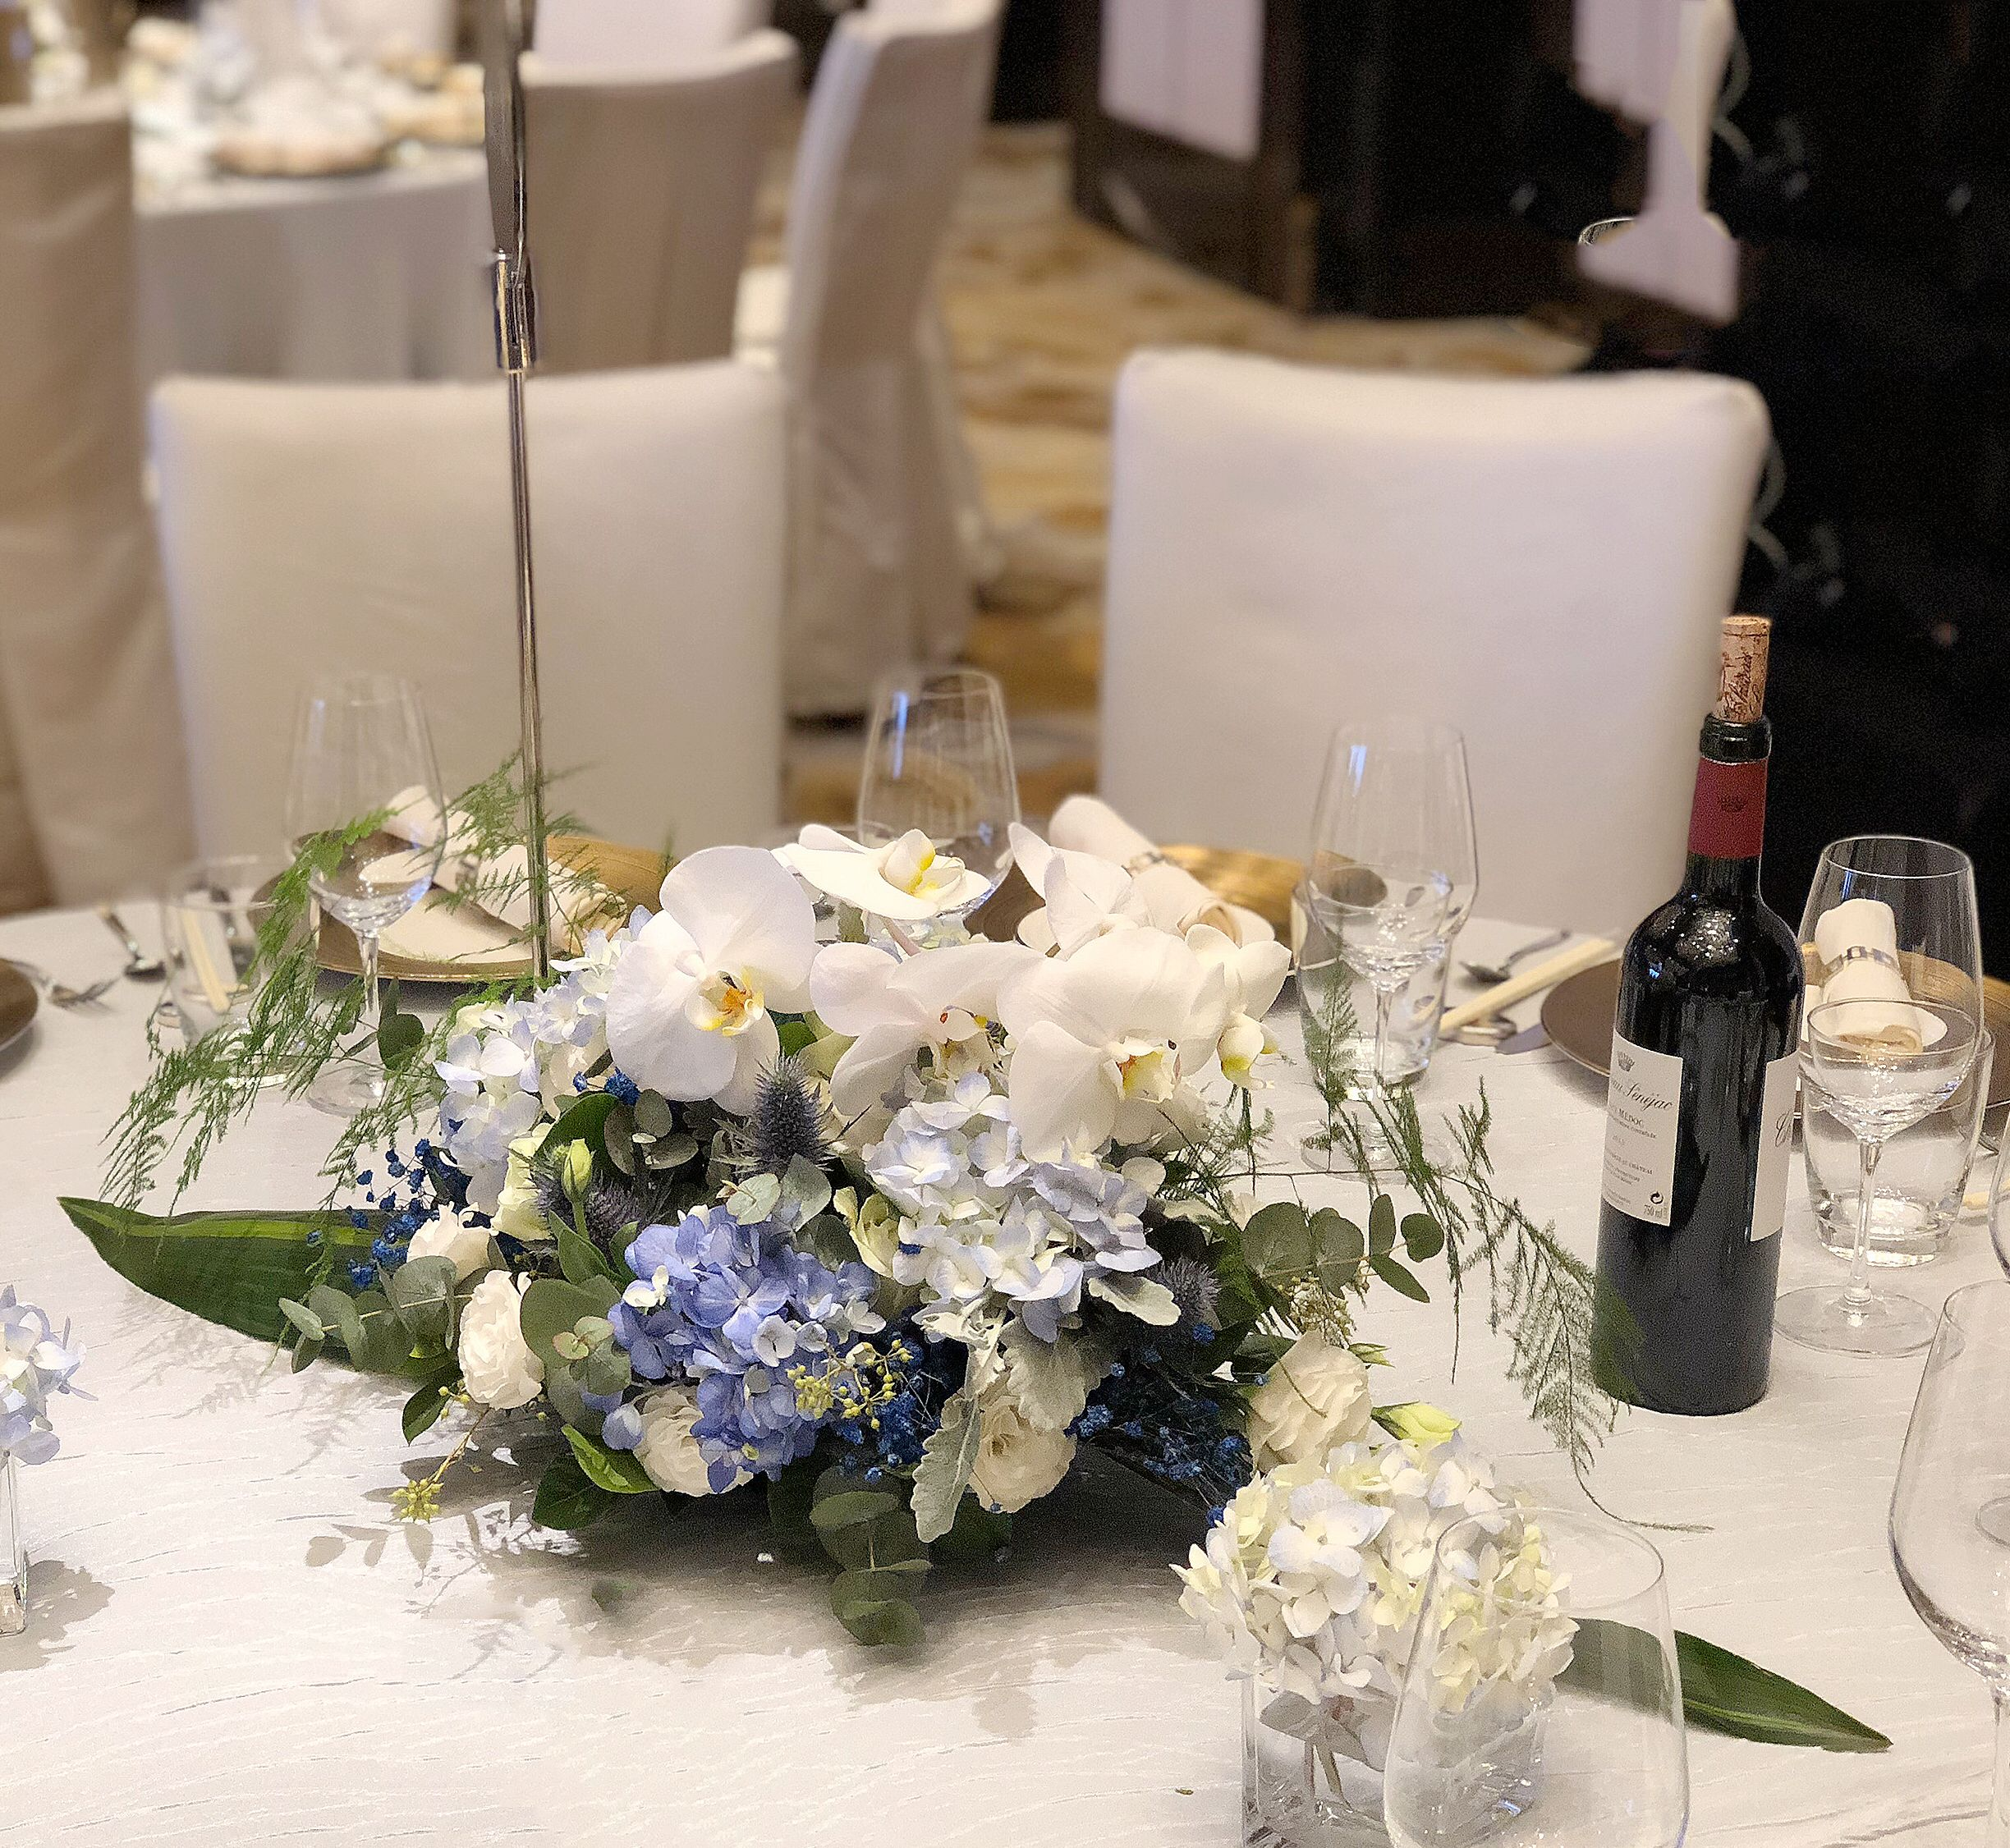 White Orchid Rose Blue Hydrangea Table Arrangement Flower Arrangement Wedding Party Banquet Hochzeit Blumenarrangements Blumenarrangements Tischarrangements